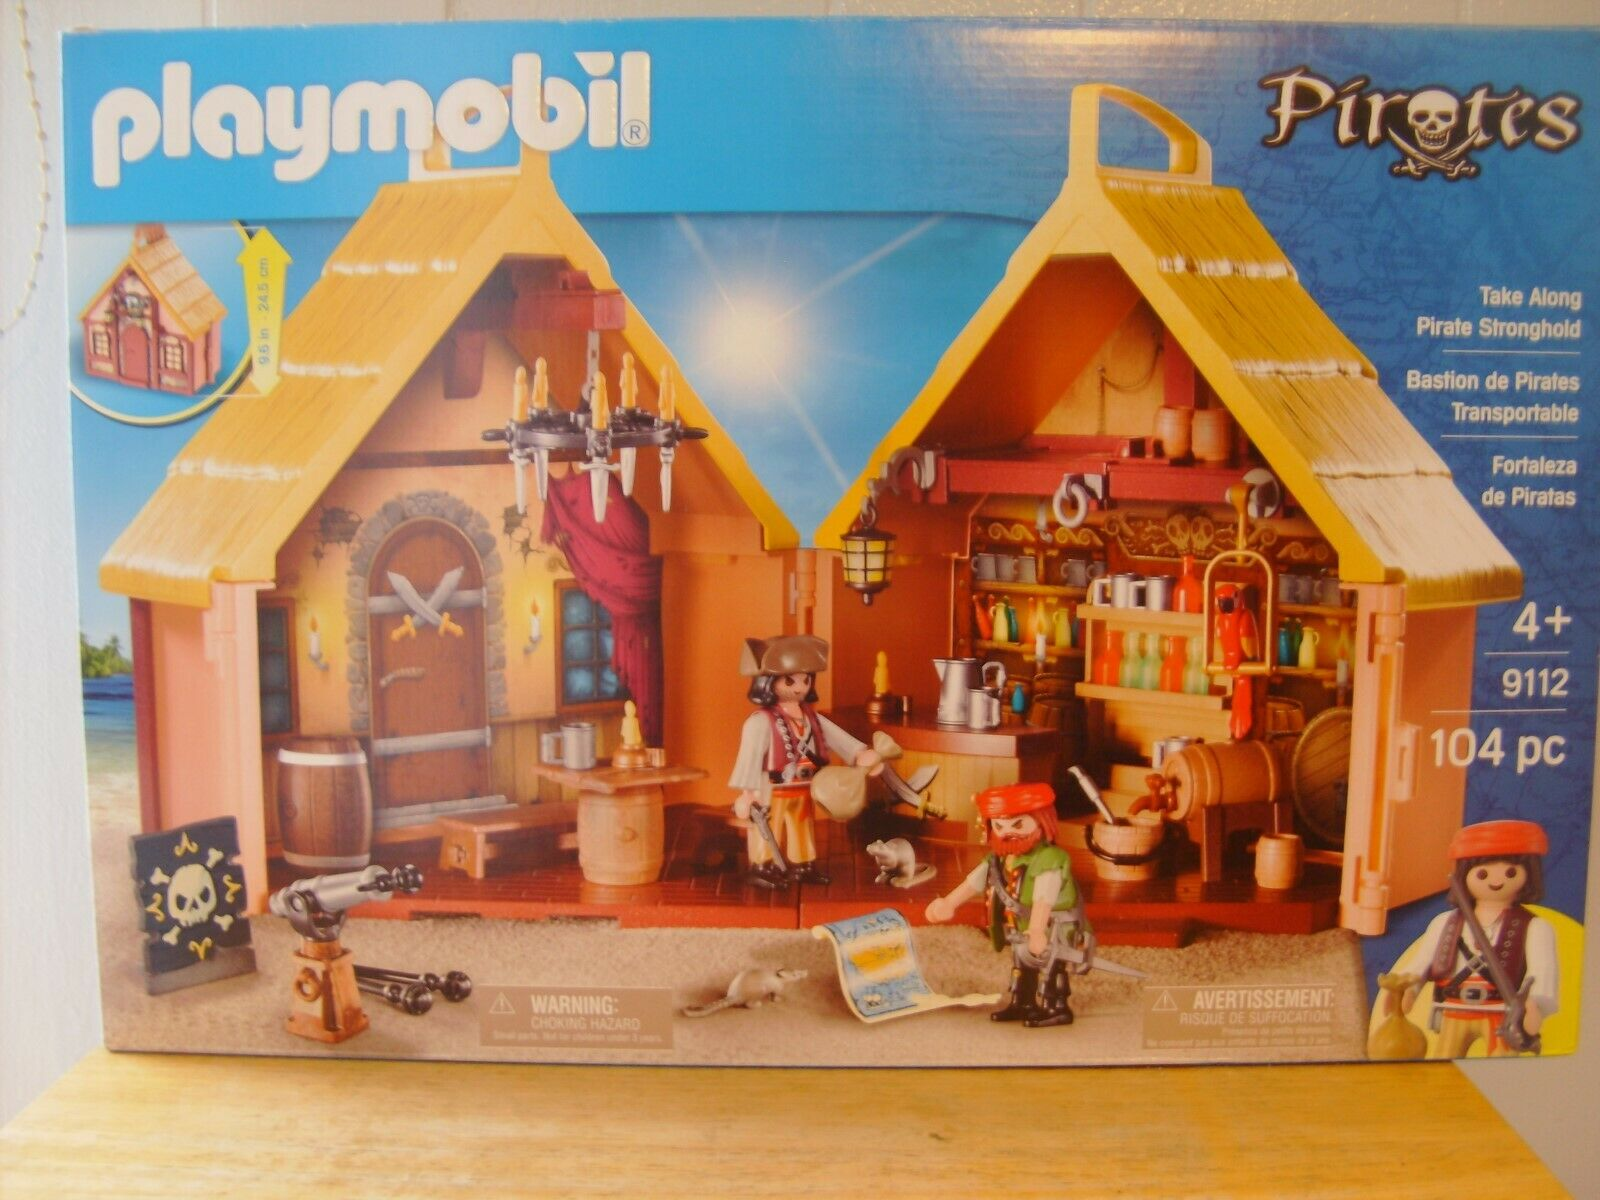 Playmobil Playmobil Playmobil PIRATES Take Along Pirate Stonghold 104 Pieces Ages 4+  NEW  aa36e3